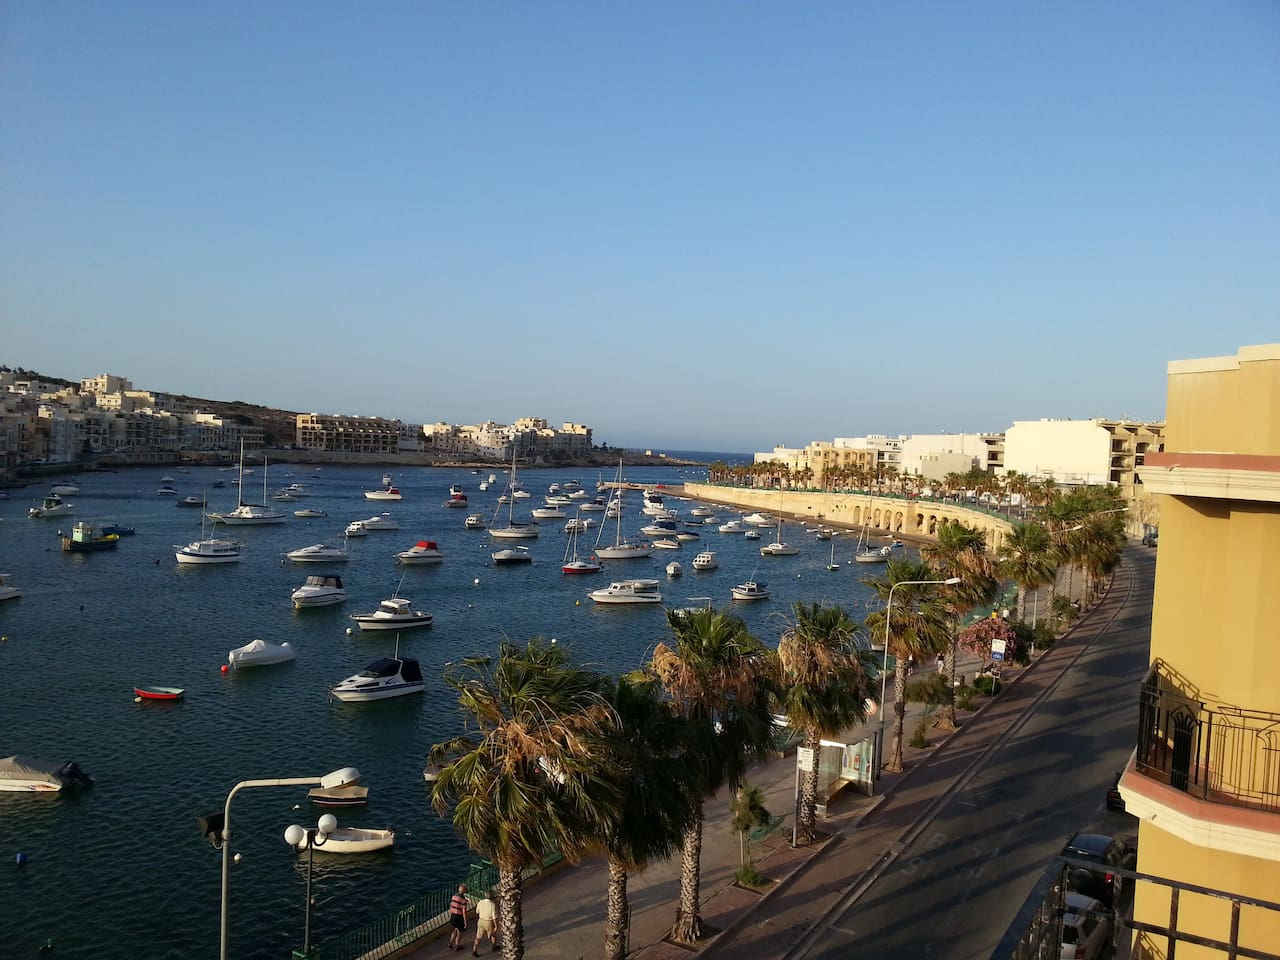 View of Marsascala Bay from Akwador roof terrace.